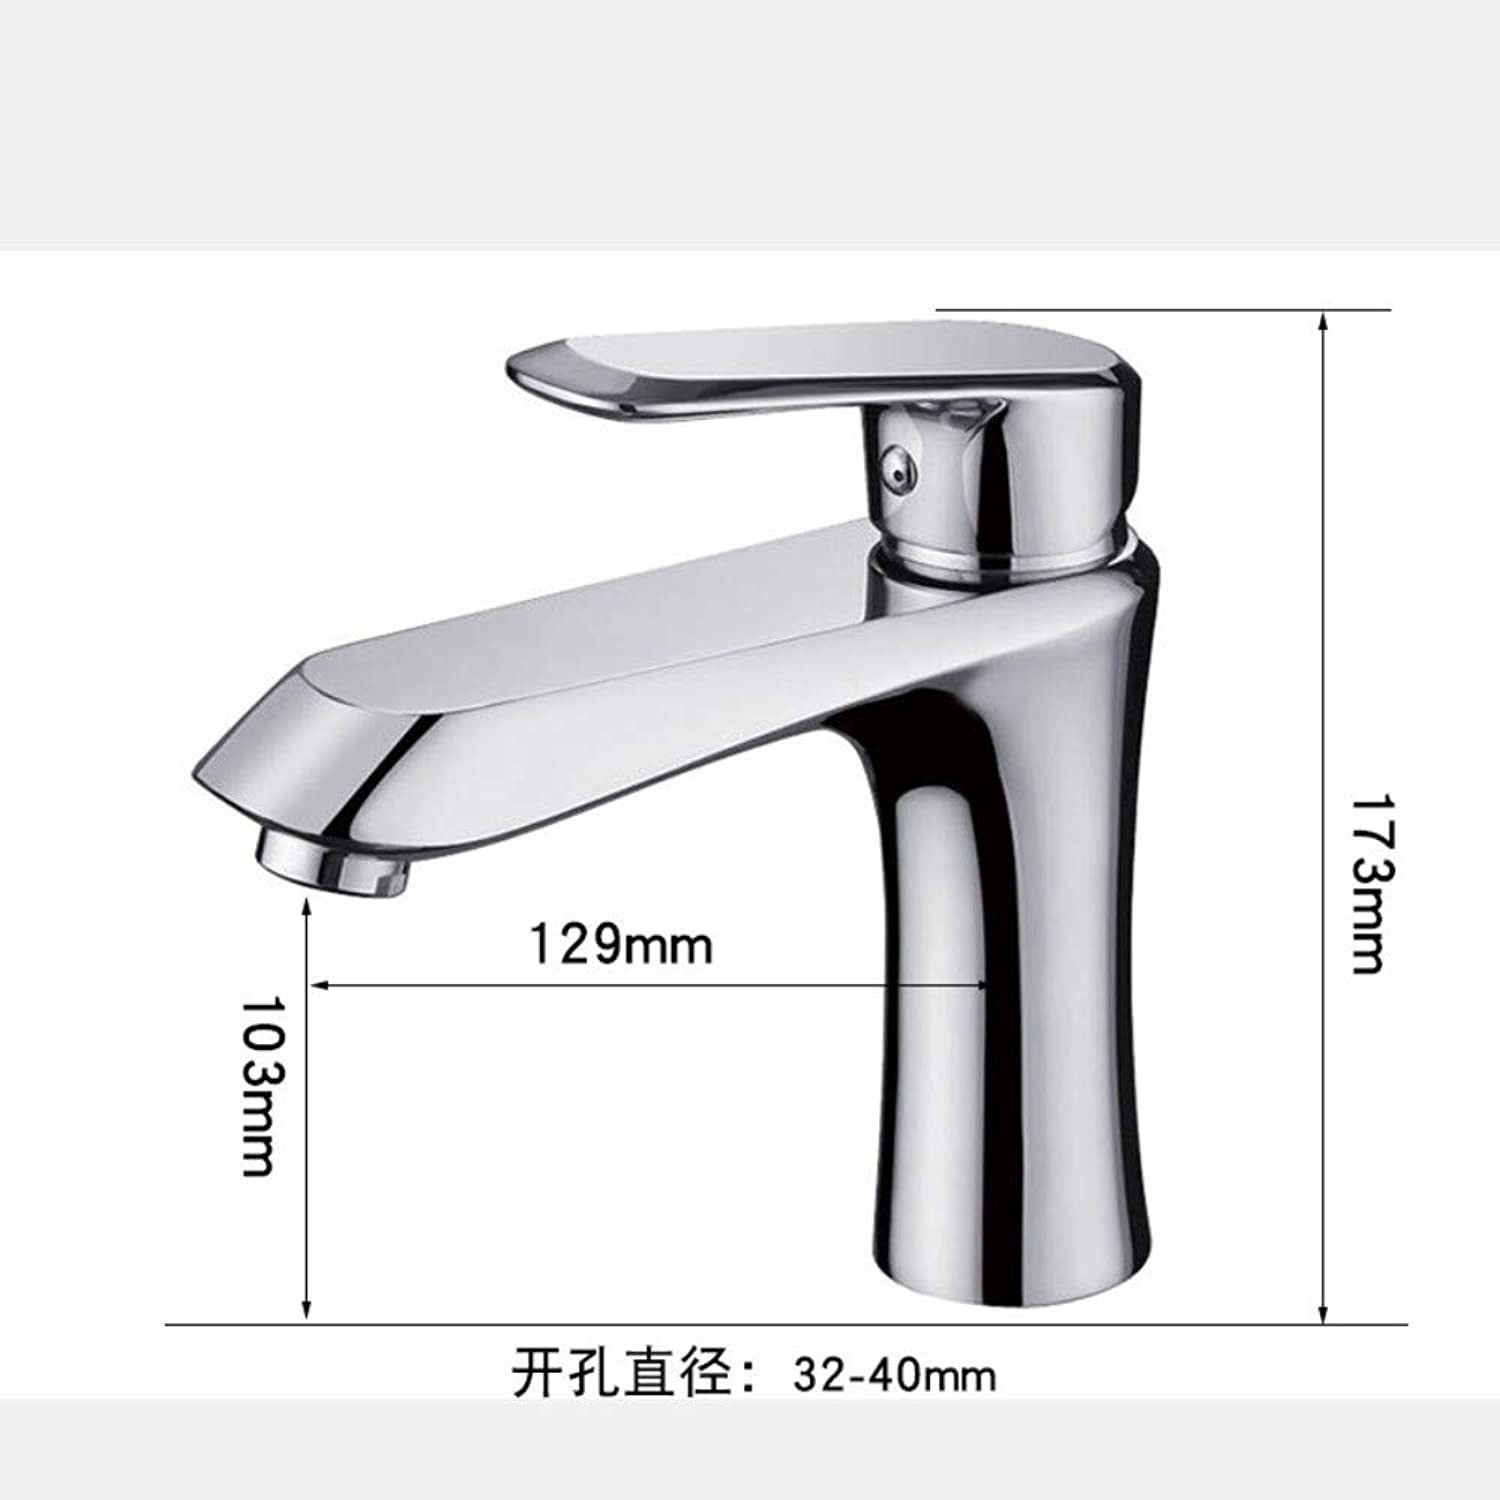 JONTON Mixer Faucet Mixer Faucetwashbasin Faucet_Manufacturer Orb Black Brushed Basin Faucet Hot And Cold Bathroom Washbasin Faucet, Chrome Short